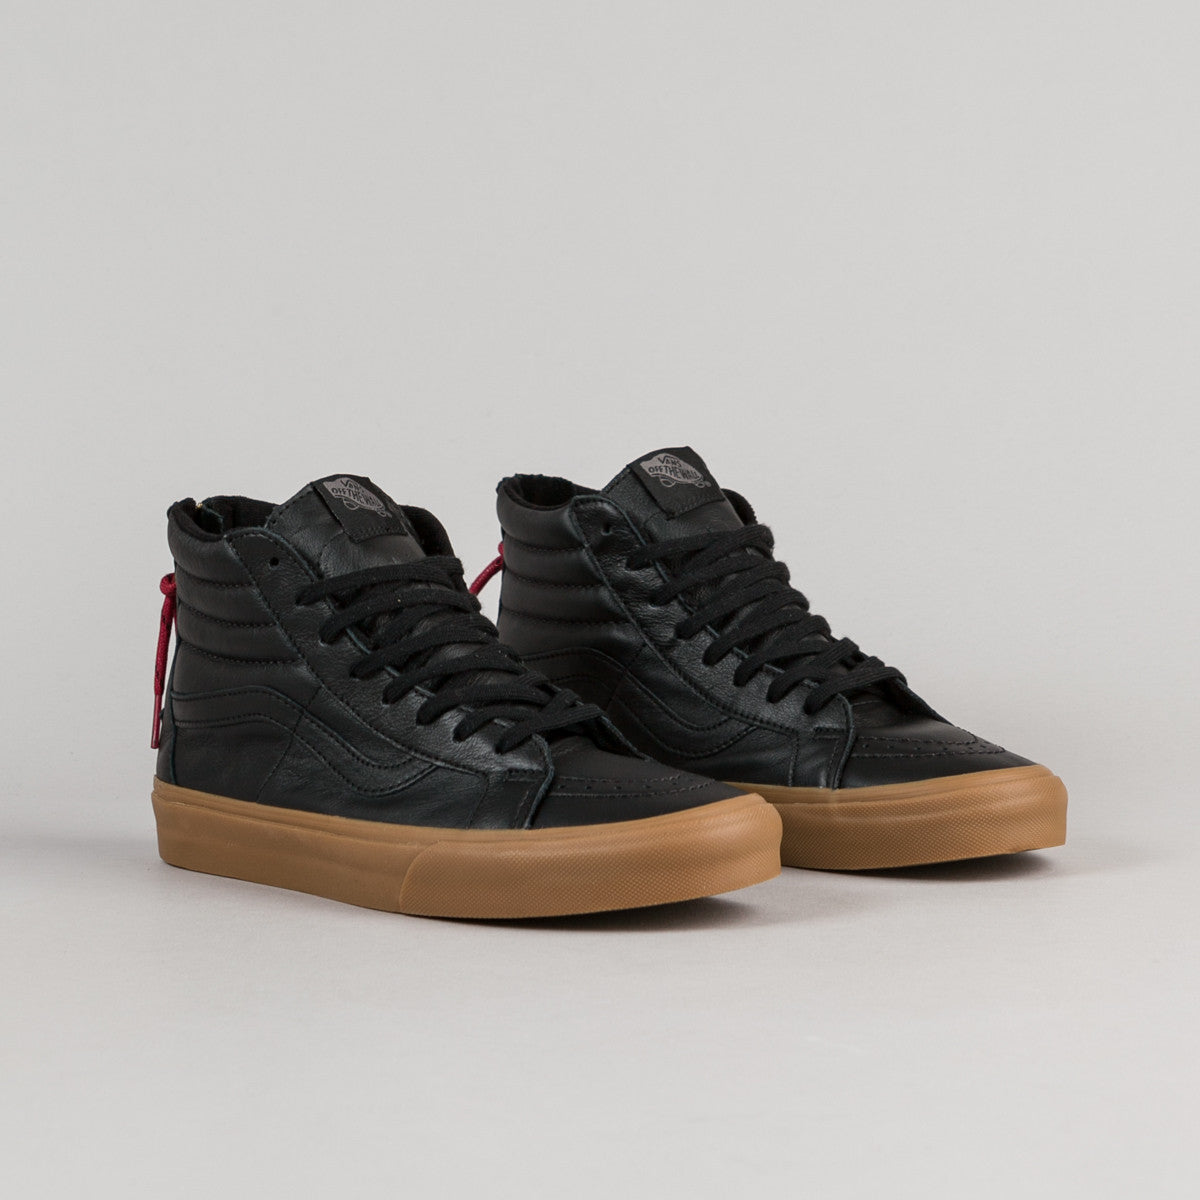 Vans Sk8-Hi Reissue Zip Shoes - Black / Gum